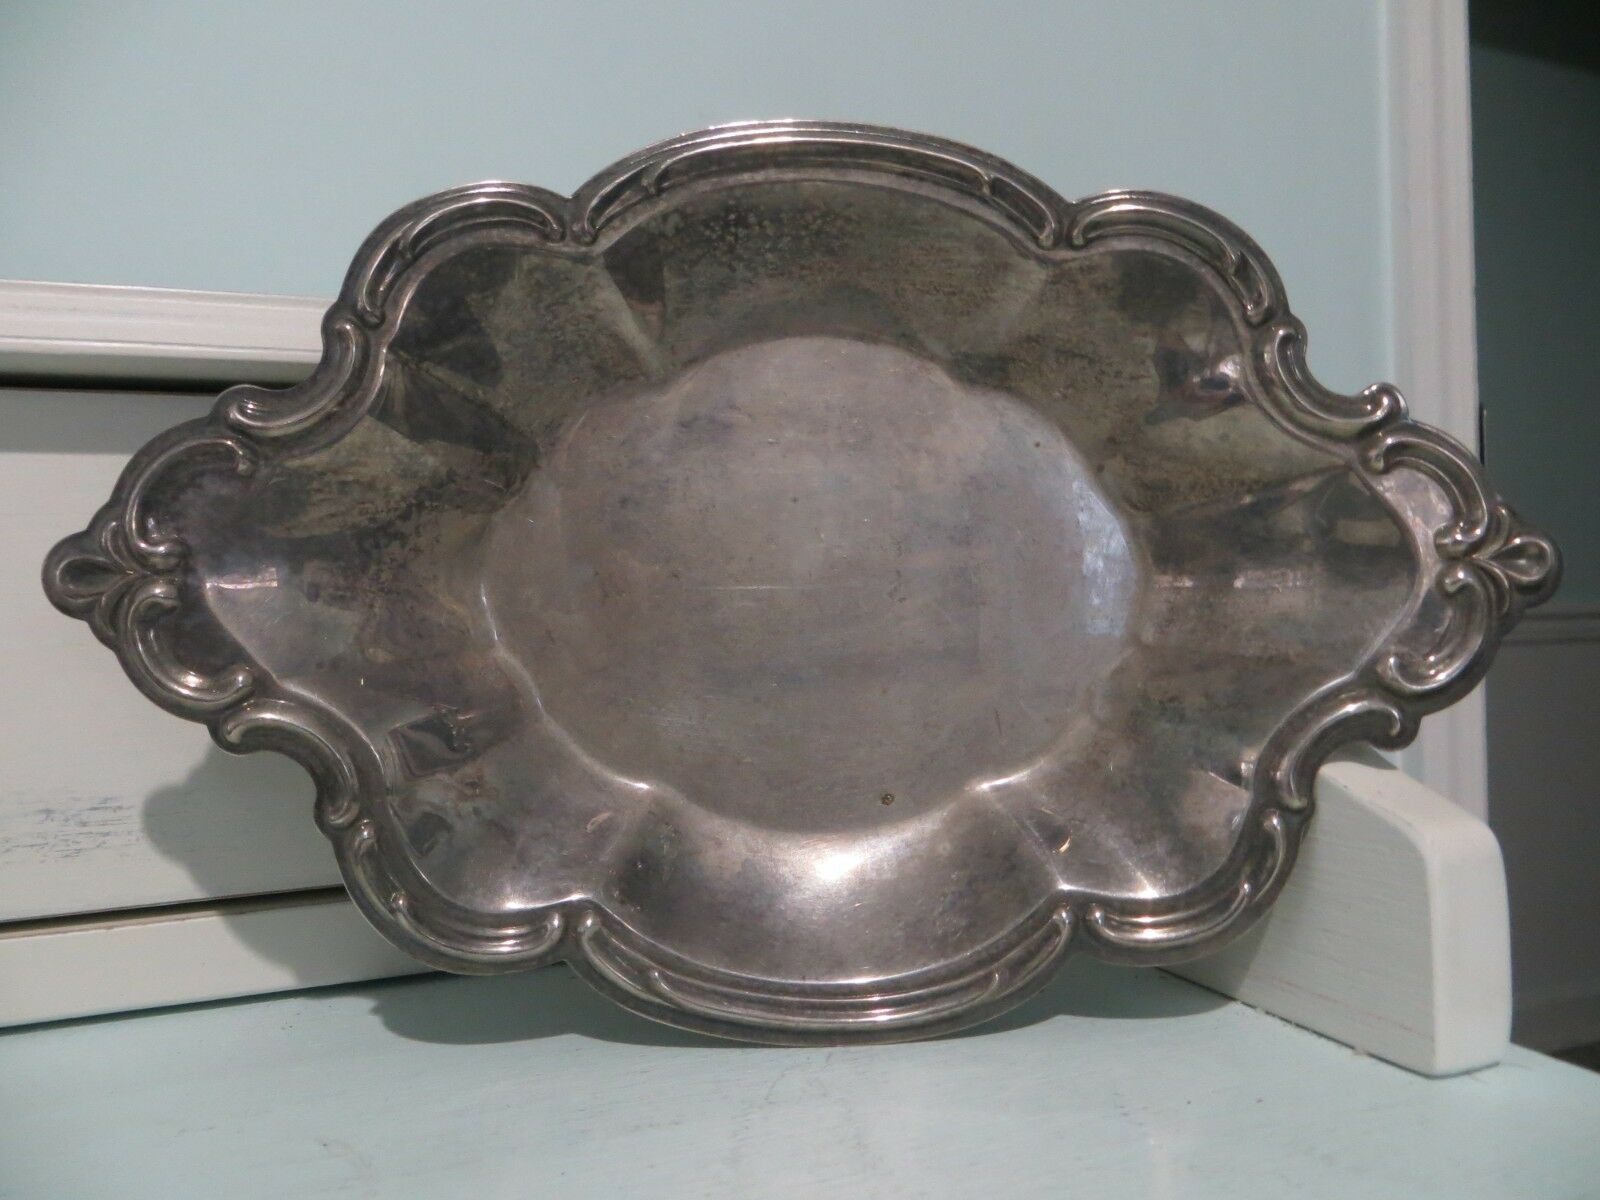 Vintage small silver nut/candy dish made by The International Silver Company